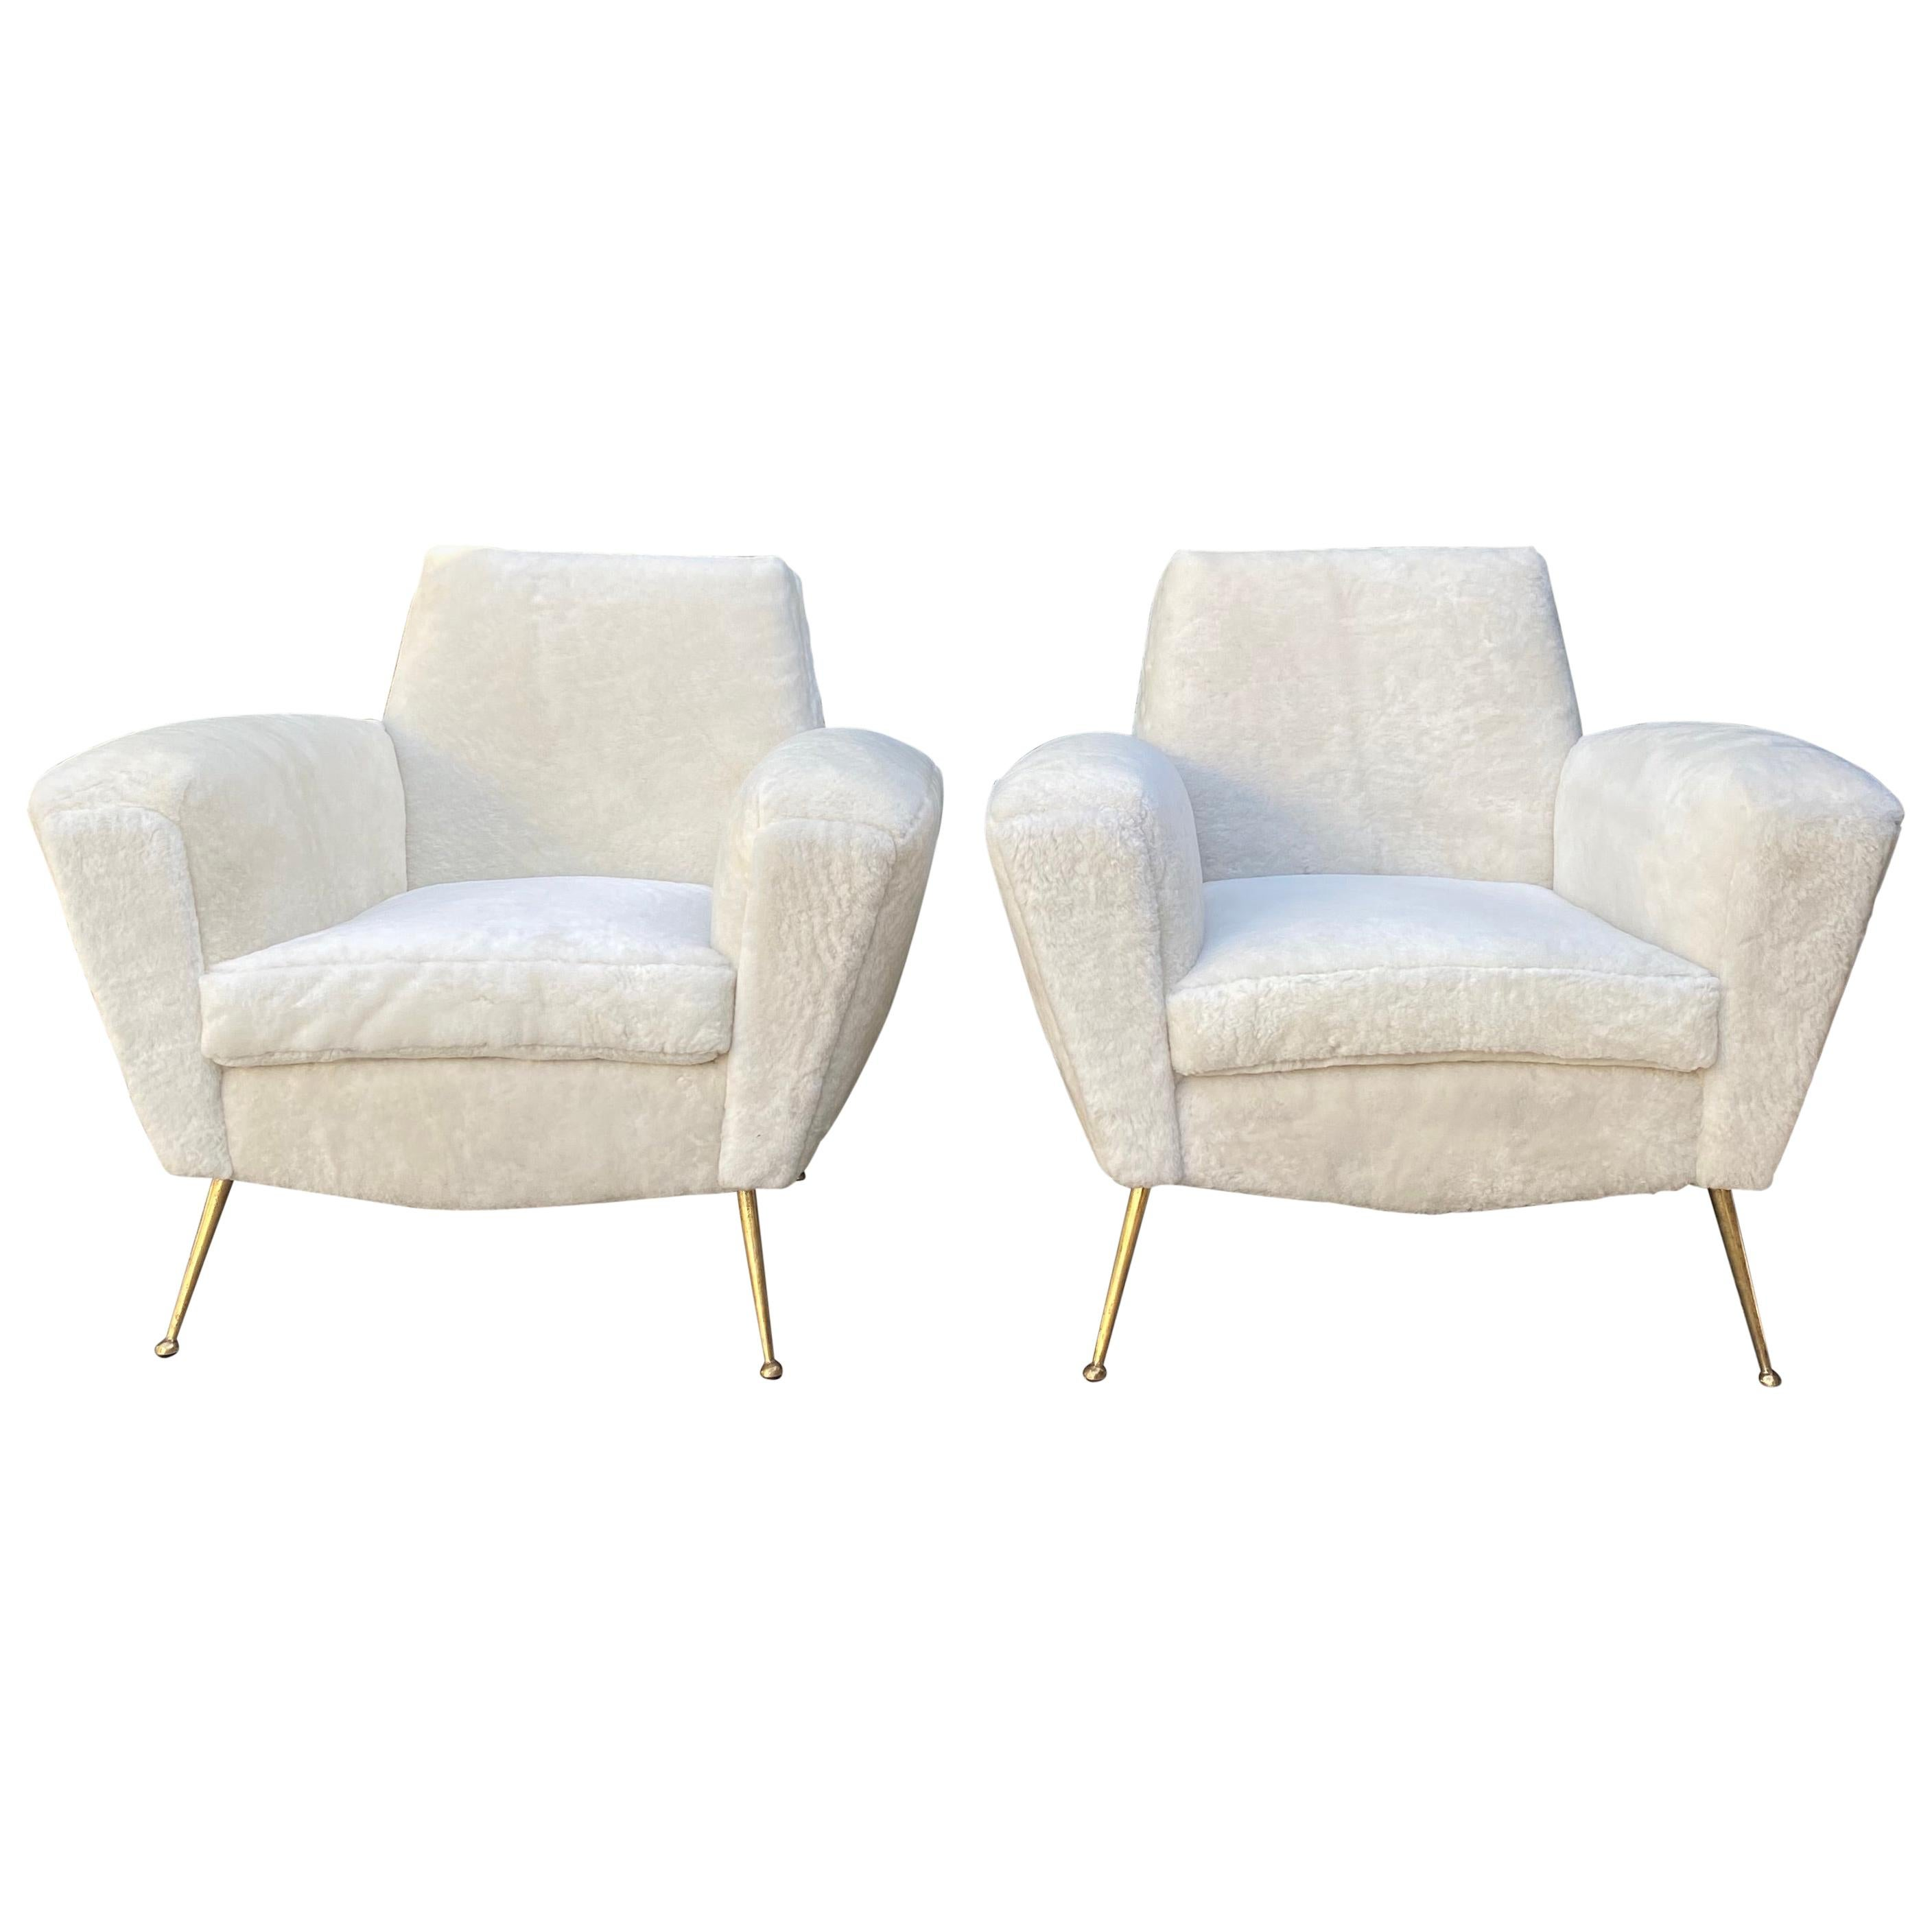 Pair of Midcentury Italian Club Chairs in White Shearling Inspired by Lenzi 548